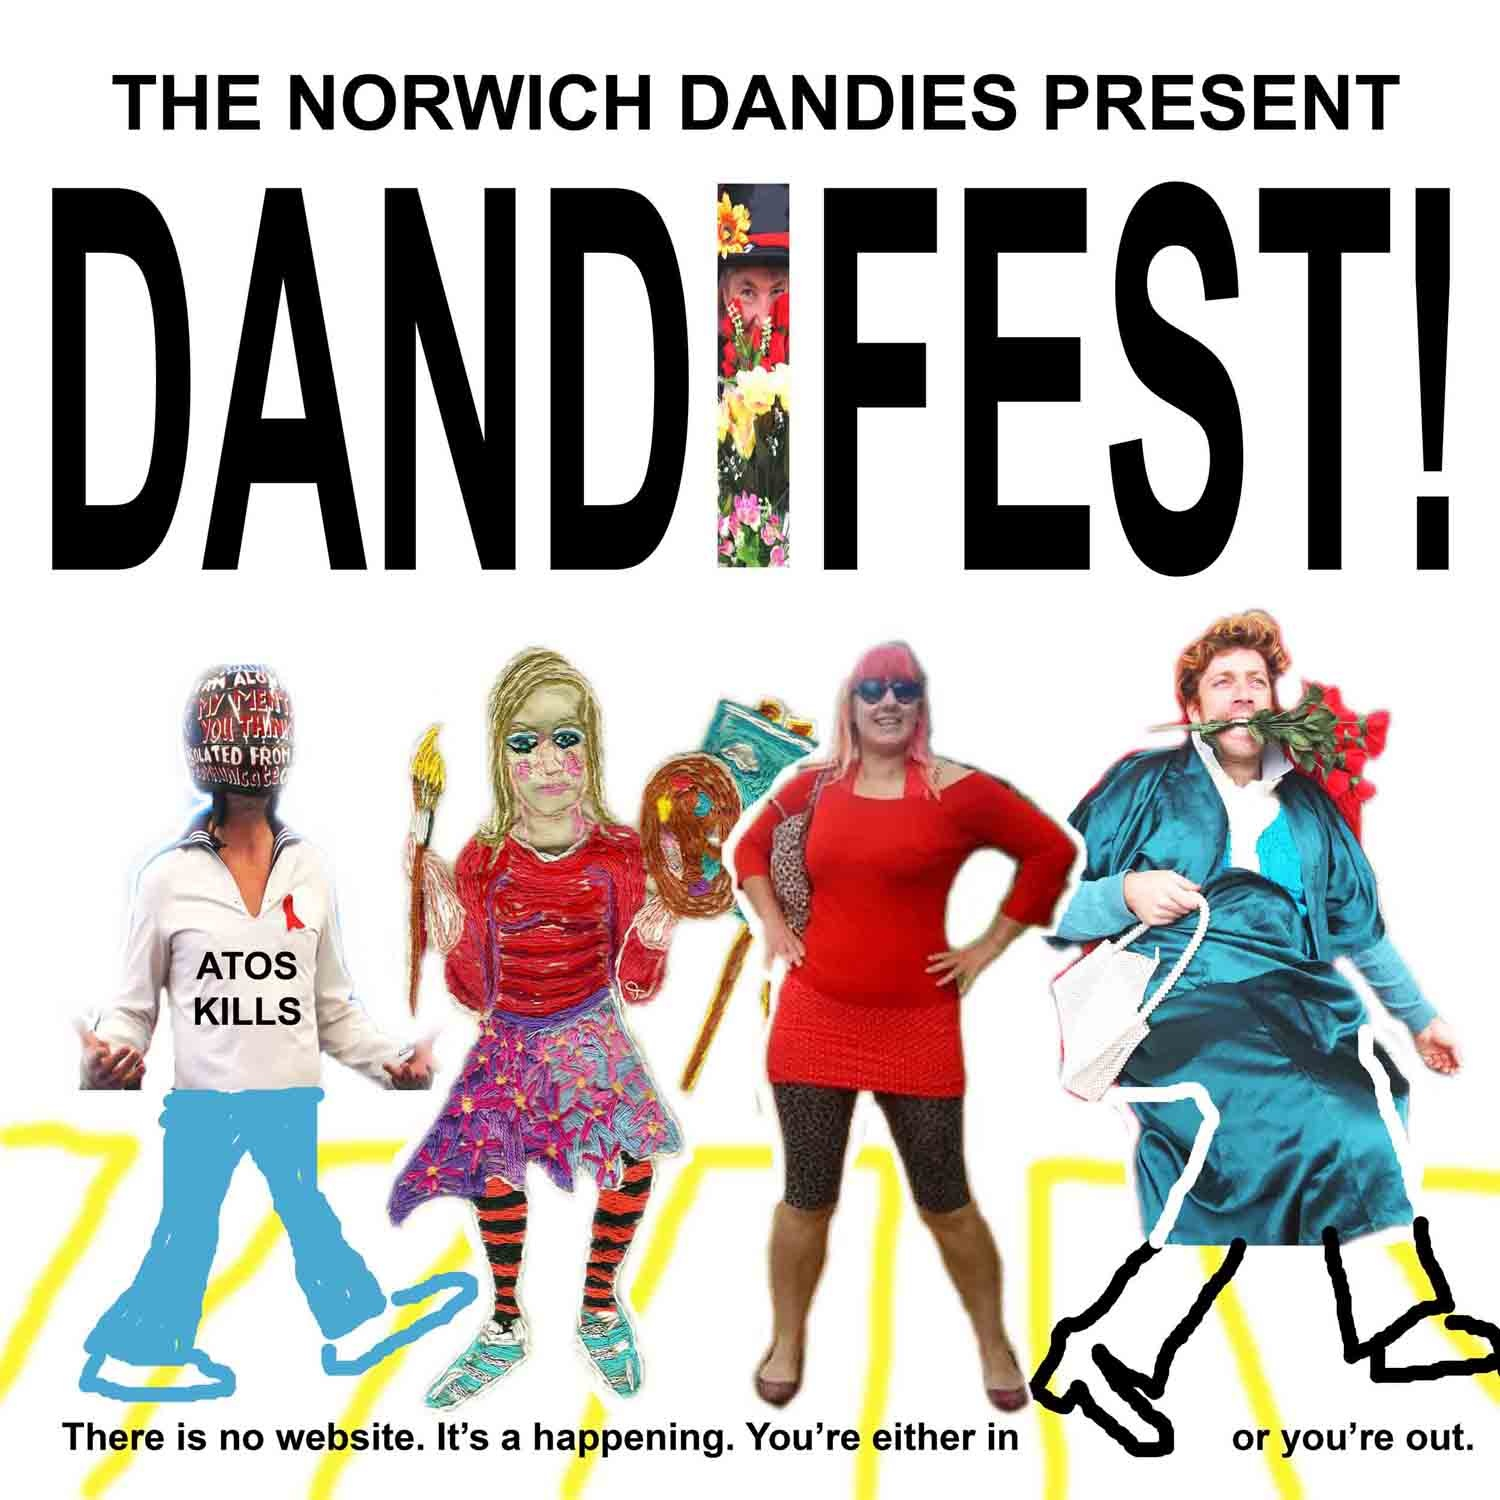 flyer showing four of the Norwich Dandies dressed up in their glad rags